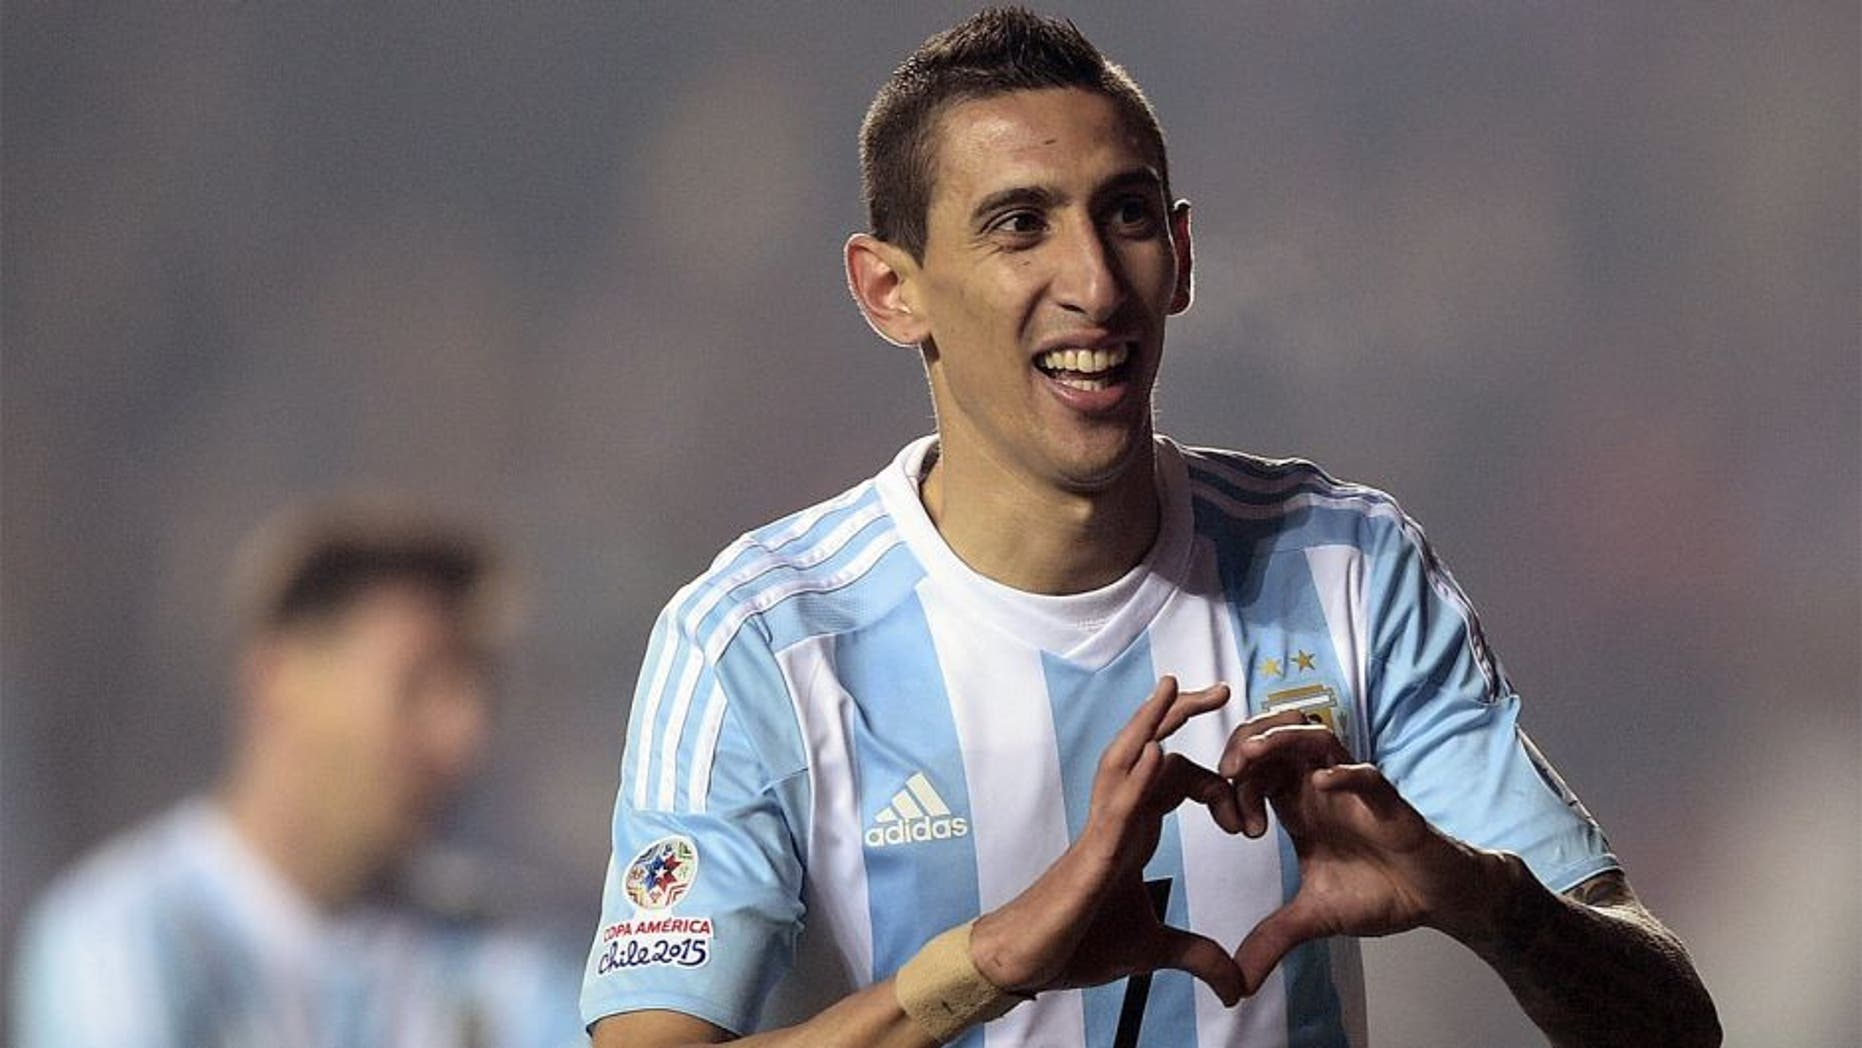 Argentina's forward Angel Di Maria celebrates after scoring against Paraguay during their Copa America semifinal football match in Concepcion, Chile on June 30, 2015. AFP PHOTO / JUAN MABROMATA (Photo credit should read JUAN MABROMATA/AFP/Getty Images)